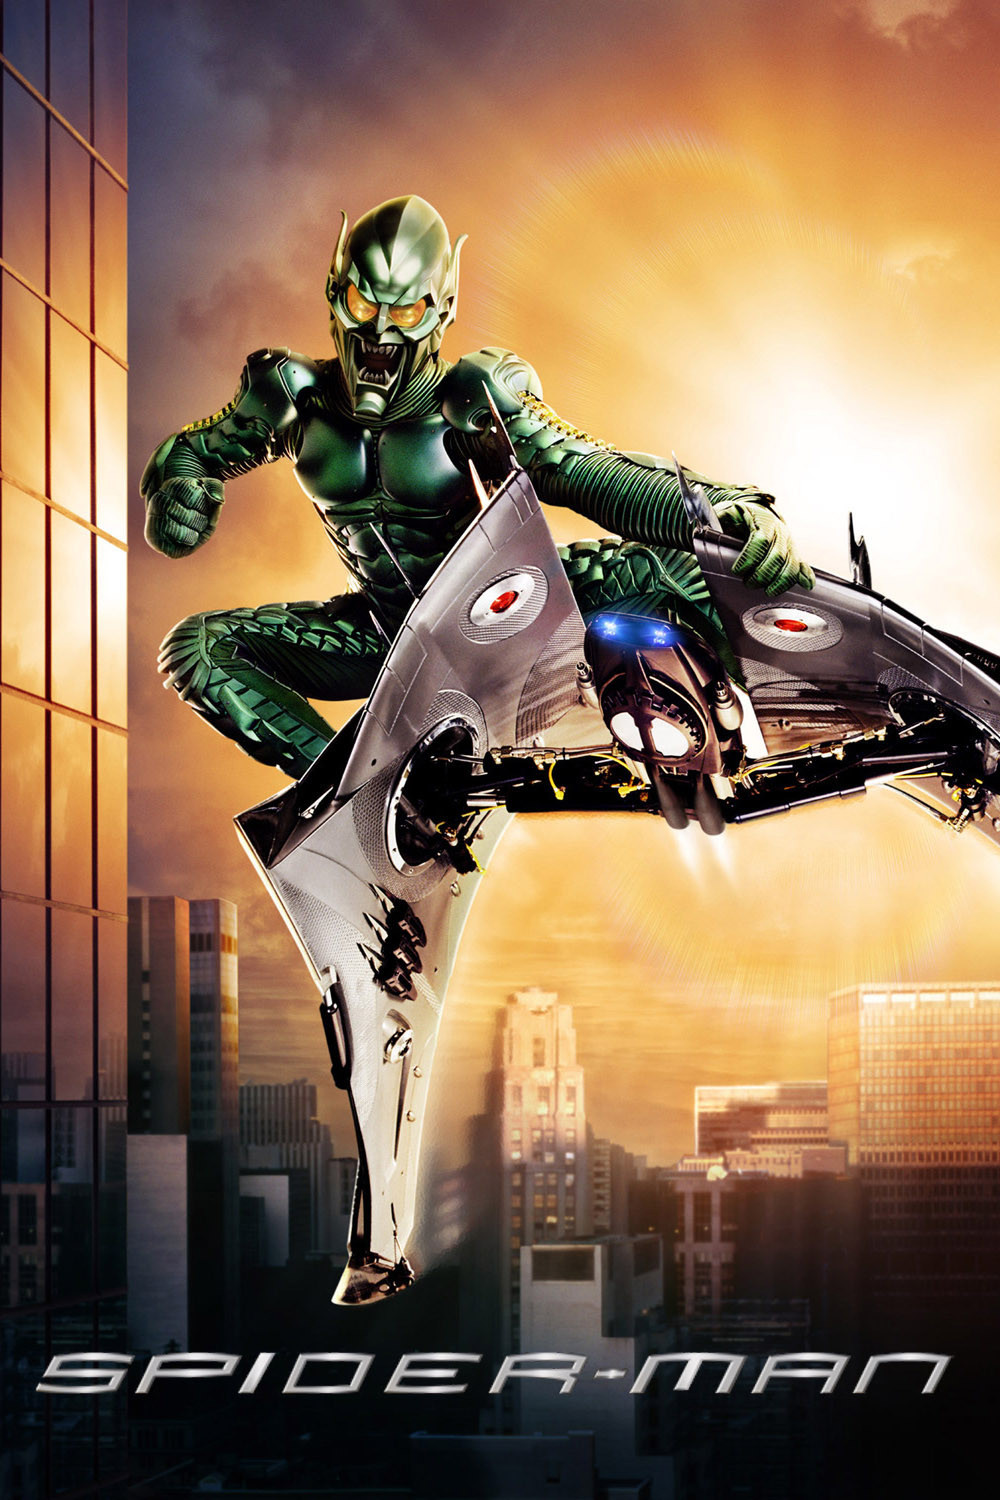 File:US-Movie-Poster-Spiderman---green-goblin-19125.jpg